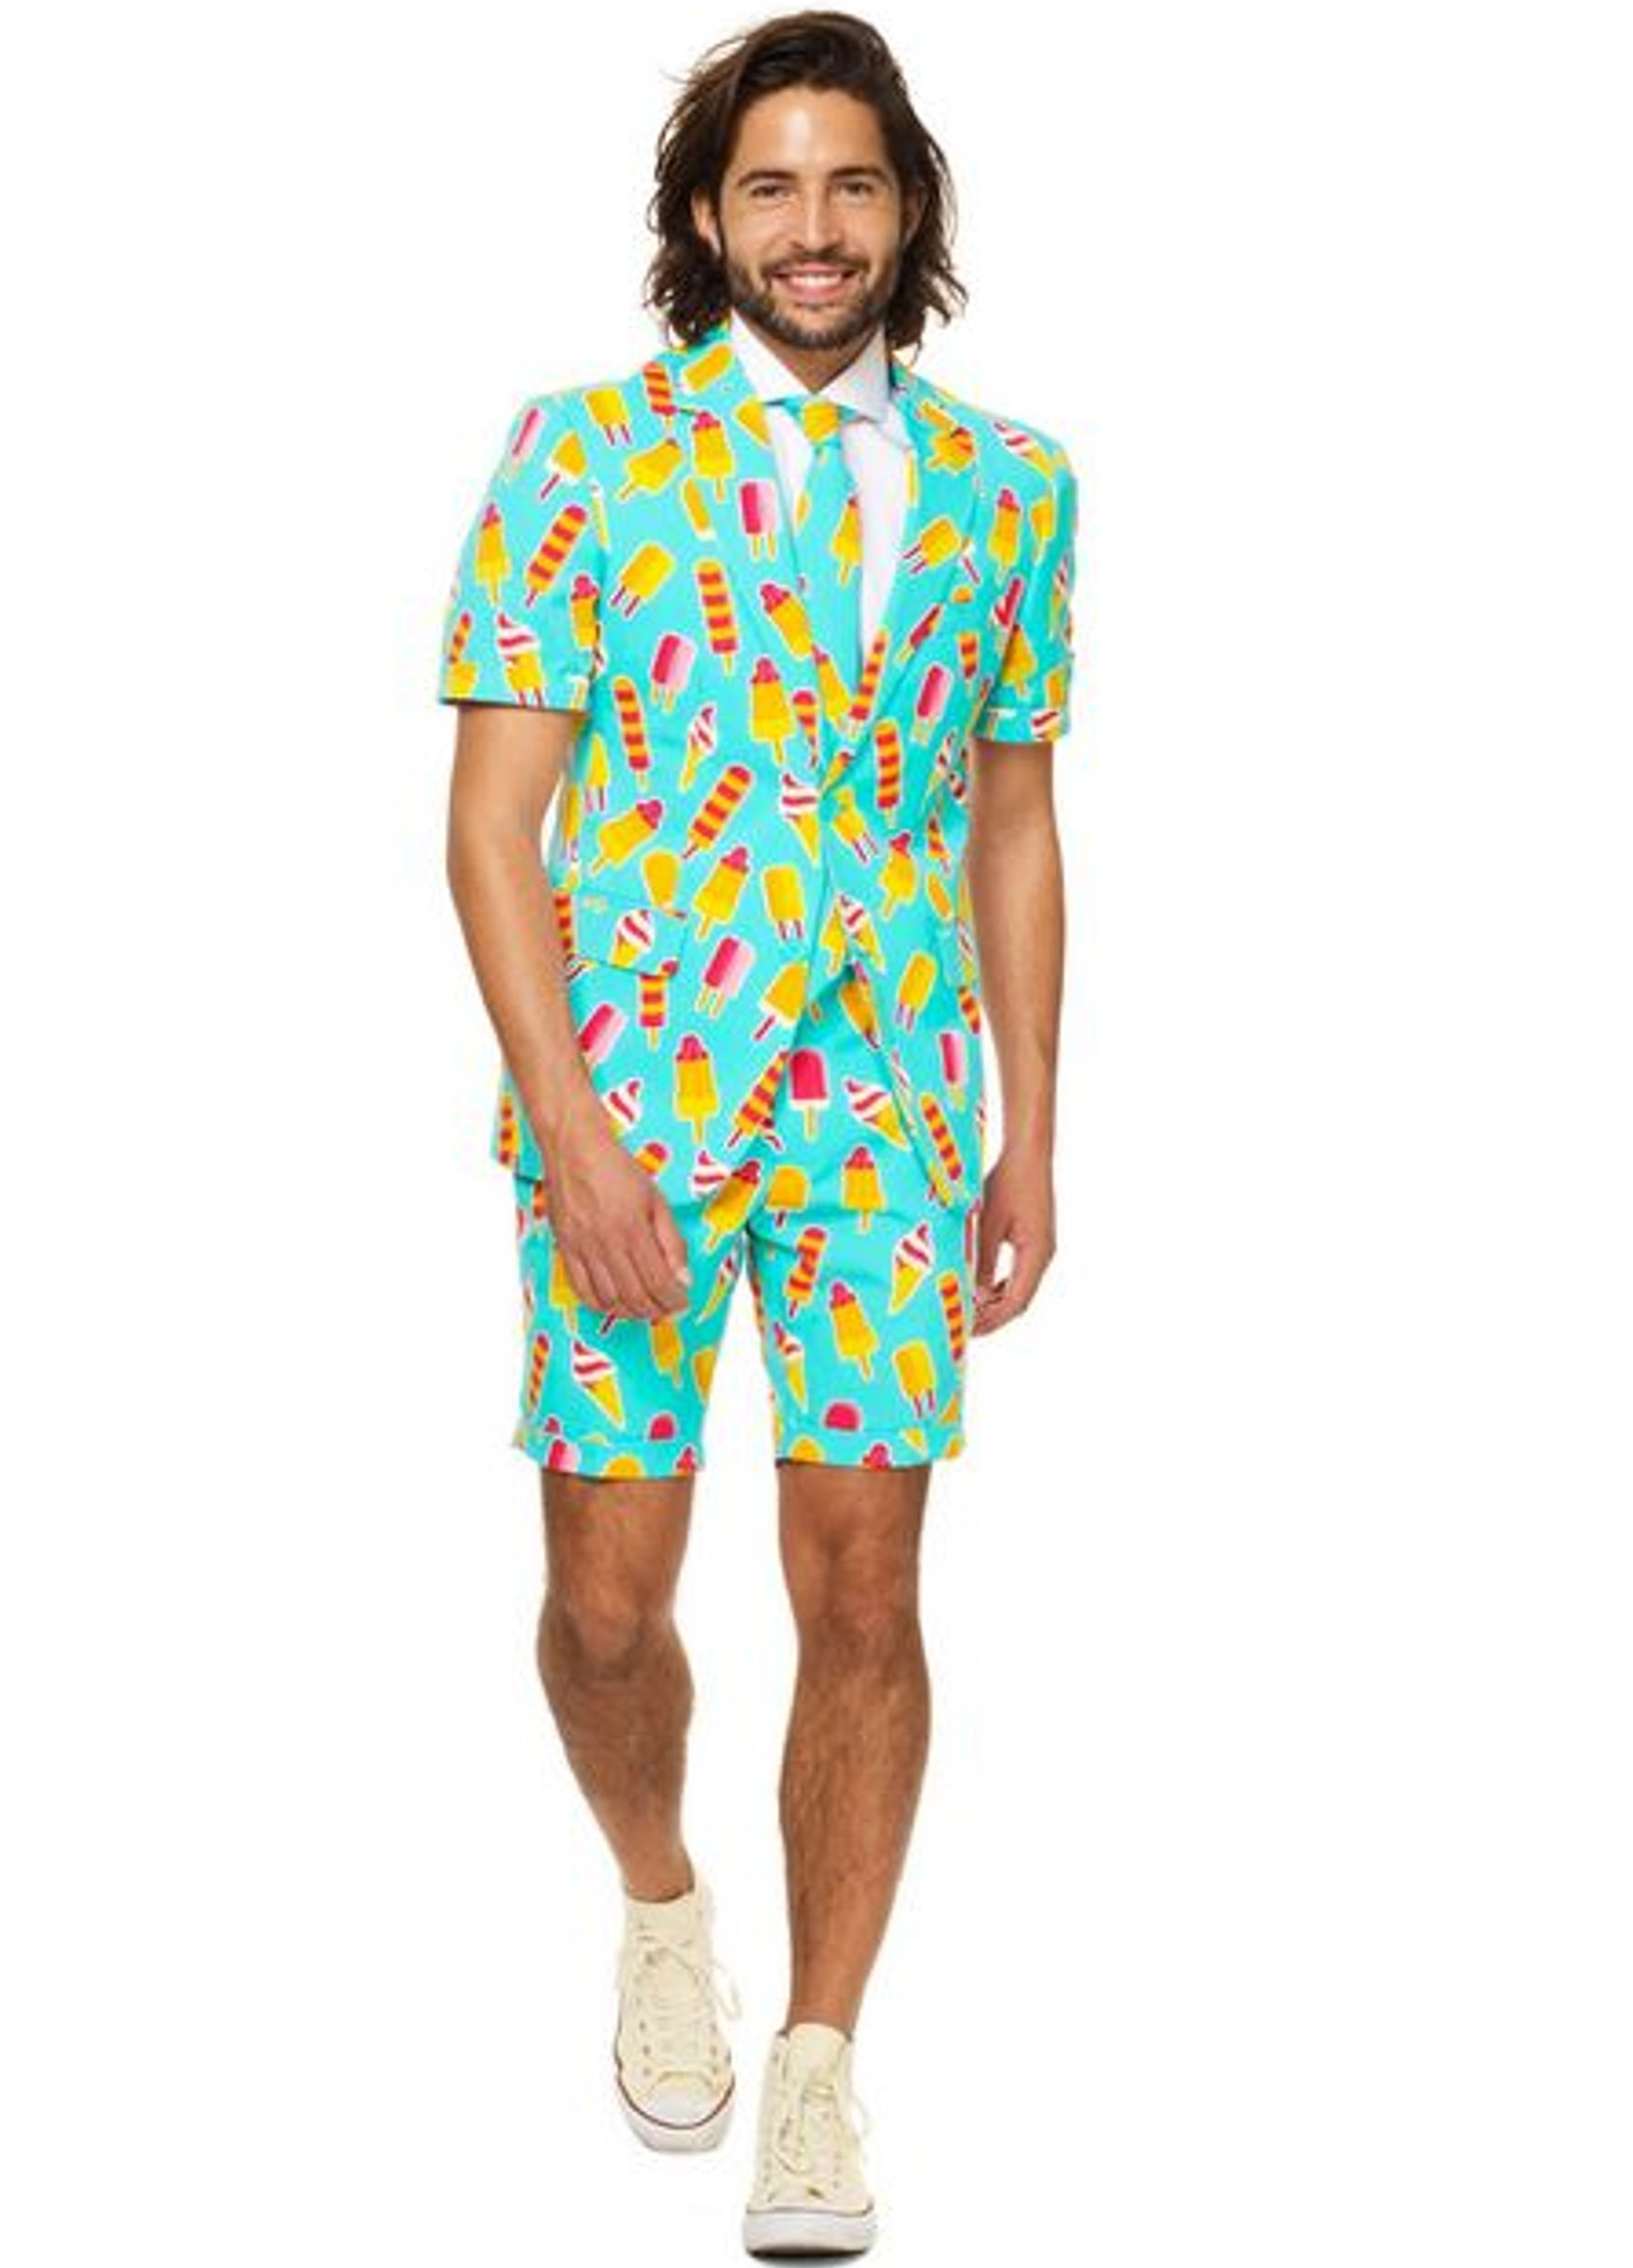 costume d 39 t mr iceman homme opposuits deguise toi achat de d guisements adultes. Black Bedroom Furniture Sets. Home Design Ideas